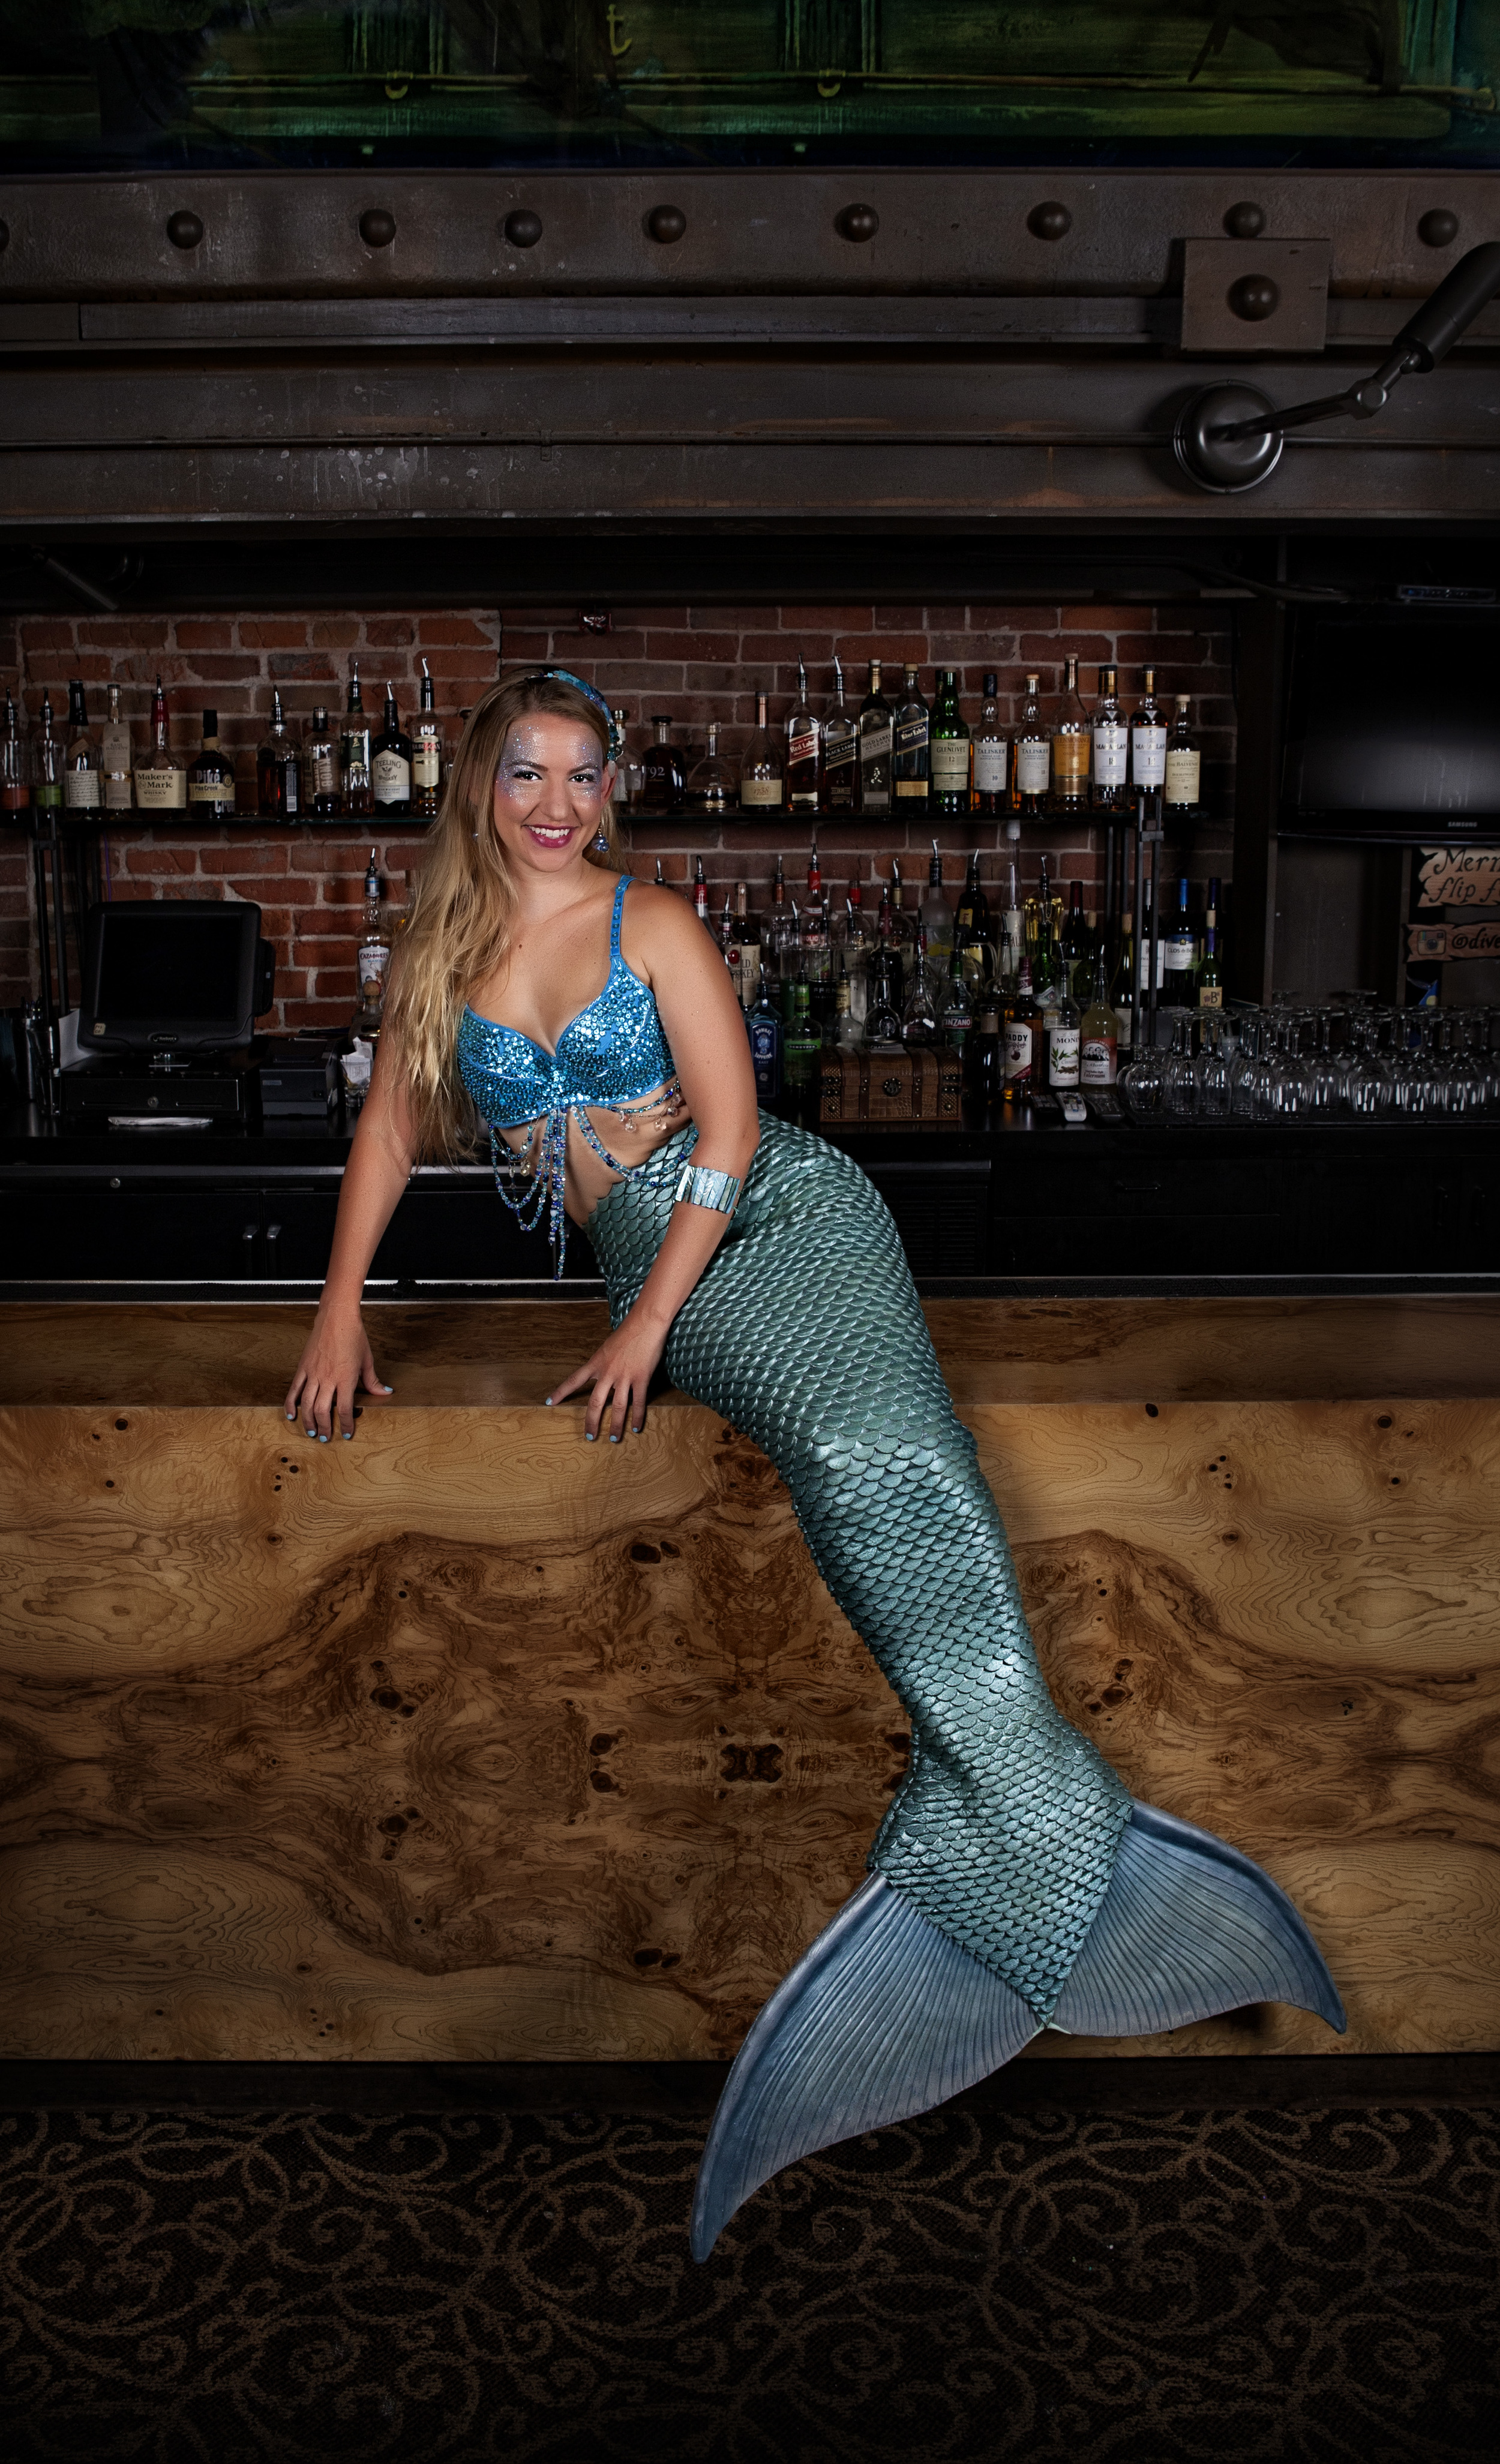 Mermaid Rachel  at Dive Bar, Image courtesy of Benton Photography - image may not be used in commercial sale or news distribution without express written authorization of photographer.